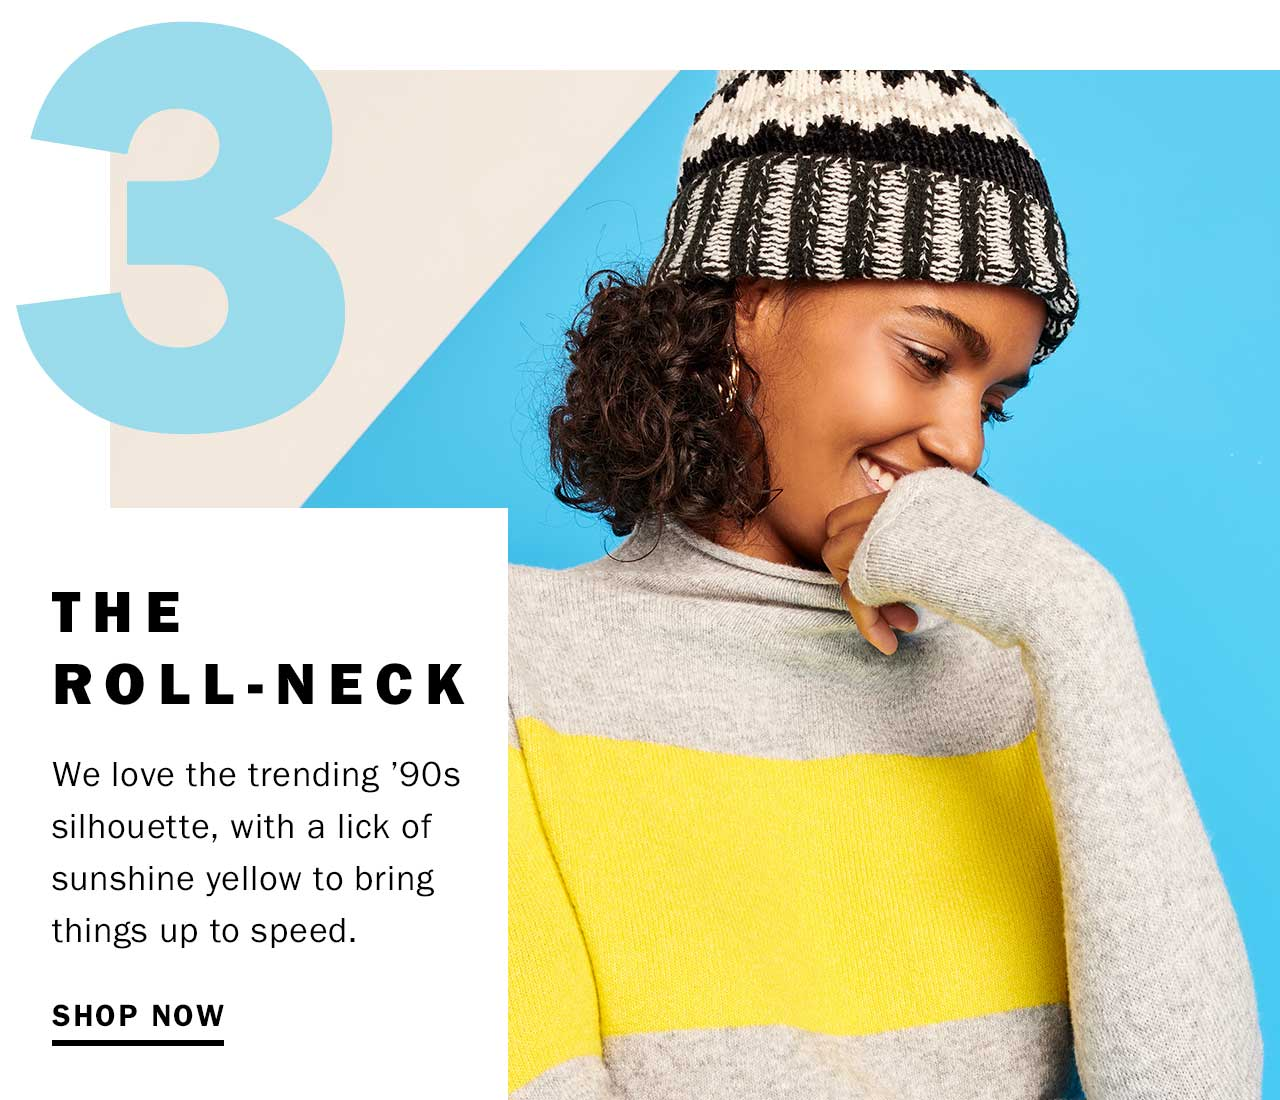 The roll-neck